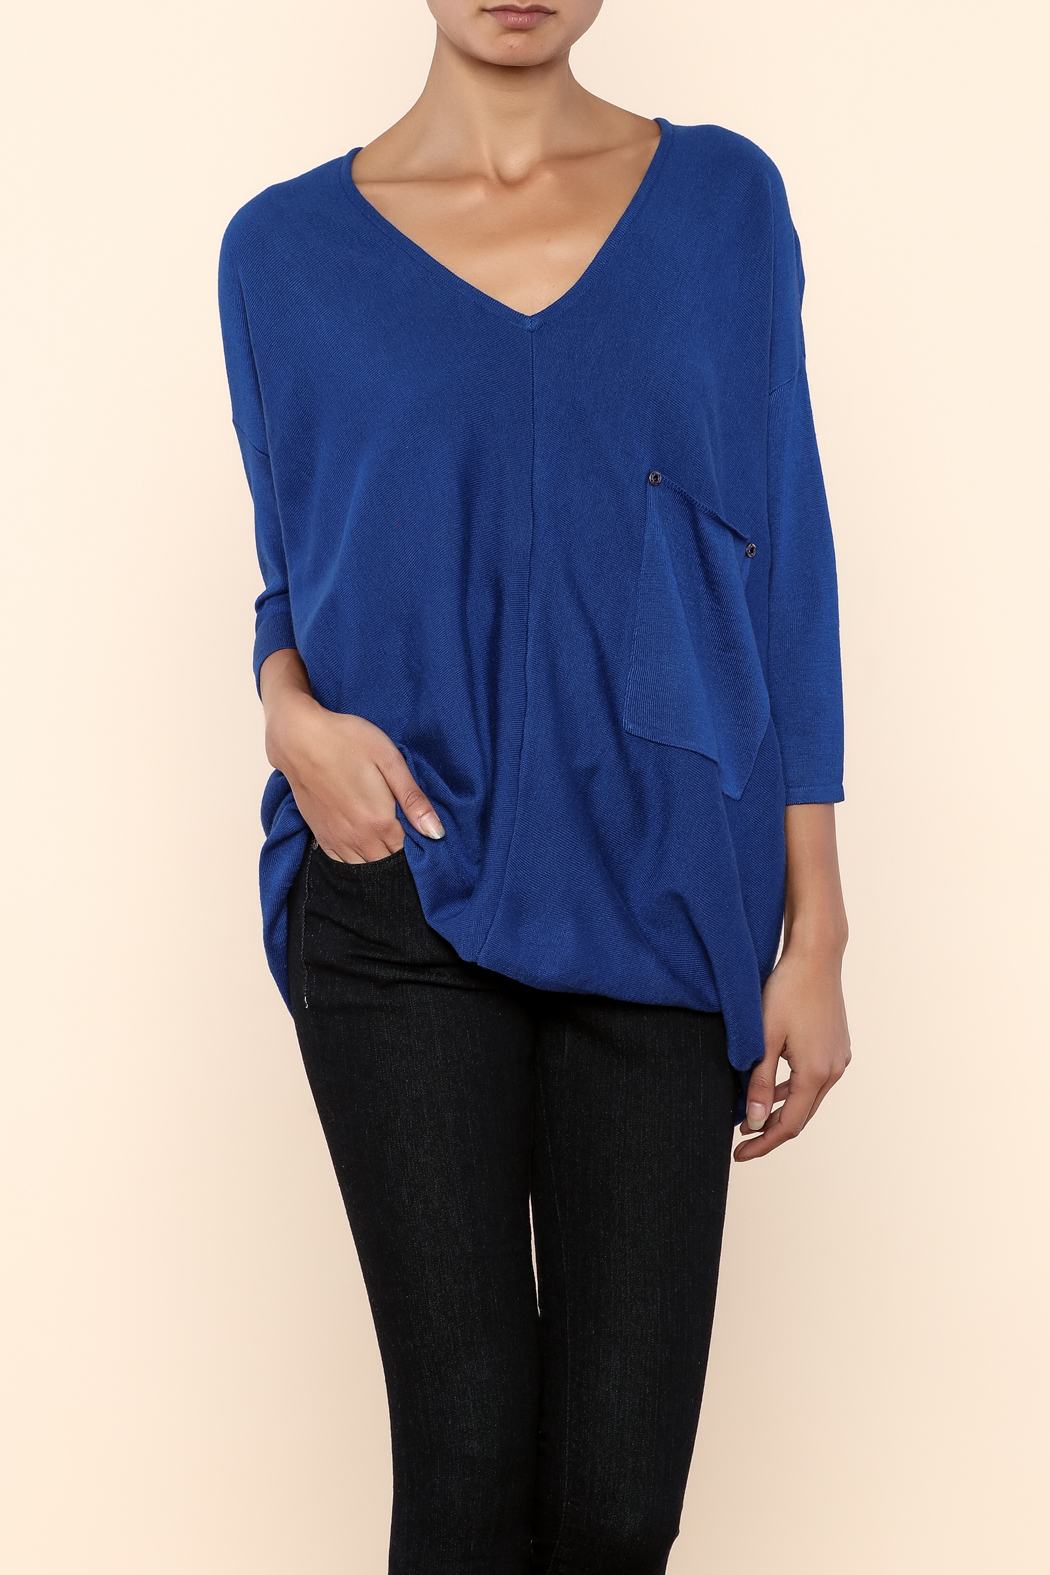 Kerisma Blue V-Neck Sweater - Main Image